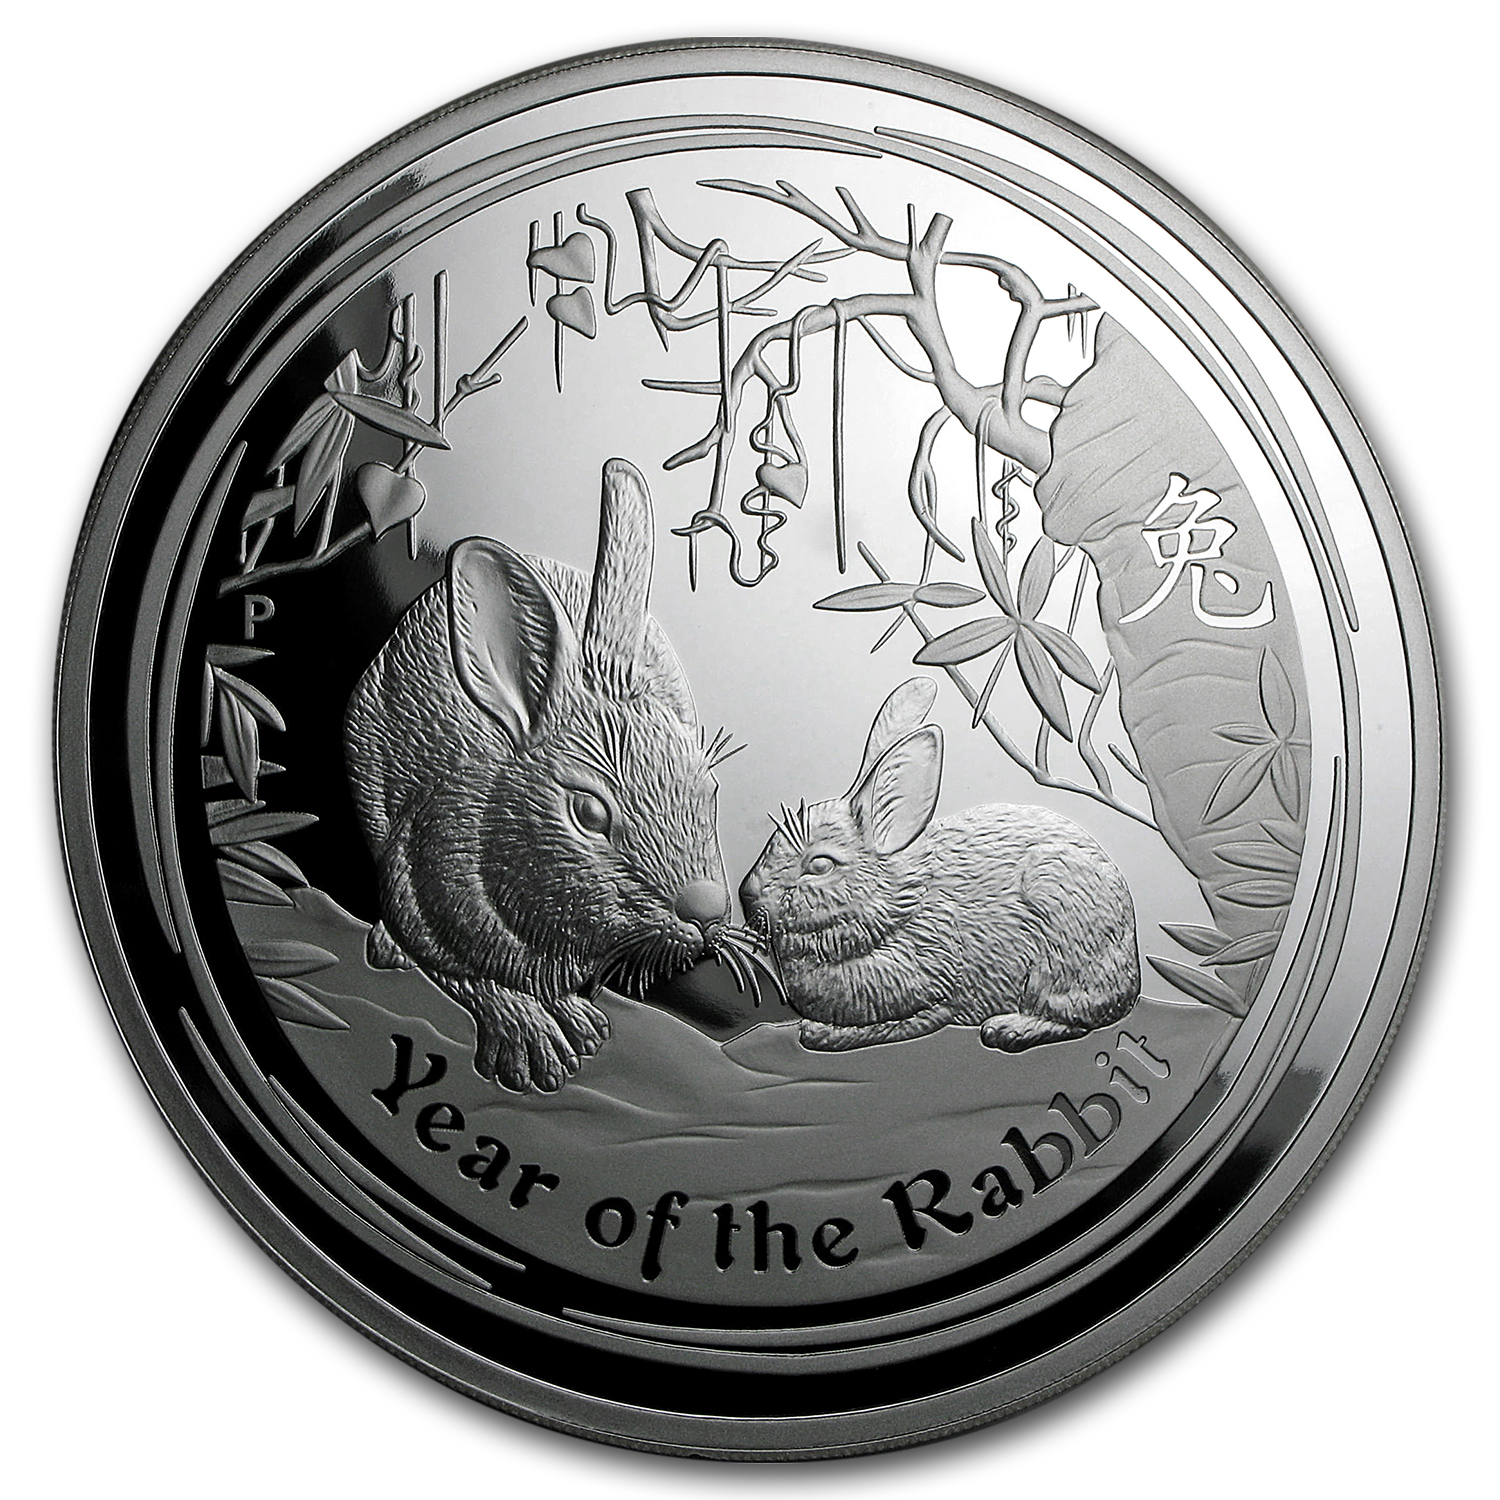 2011 Australia 1 kilo Silver Year of the Rabbit Proof (DMG Box)